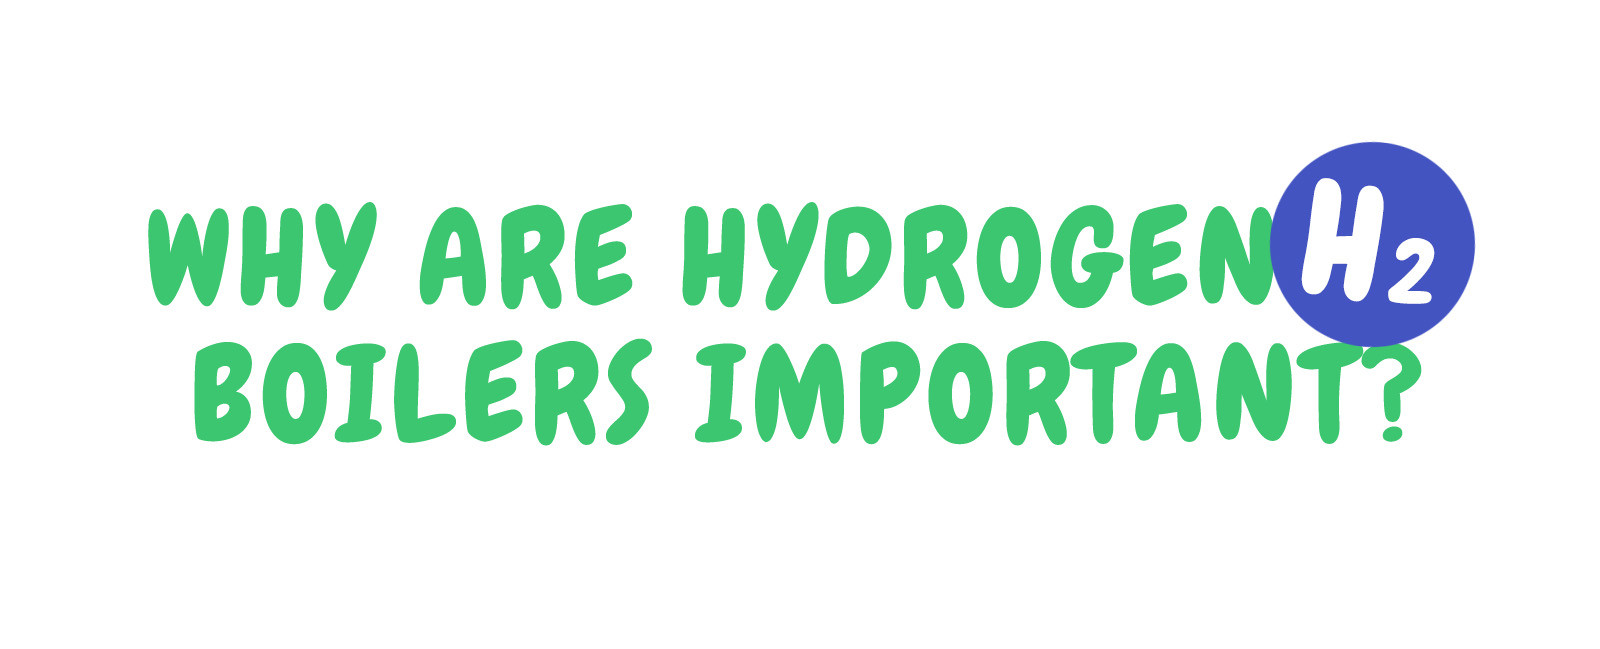 Why Are Hydrogen Boilers Important